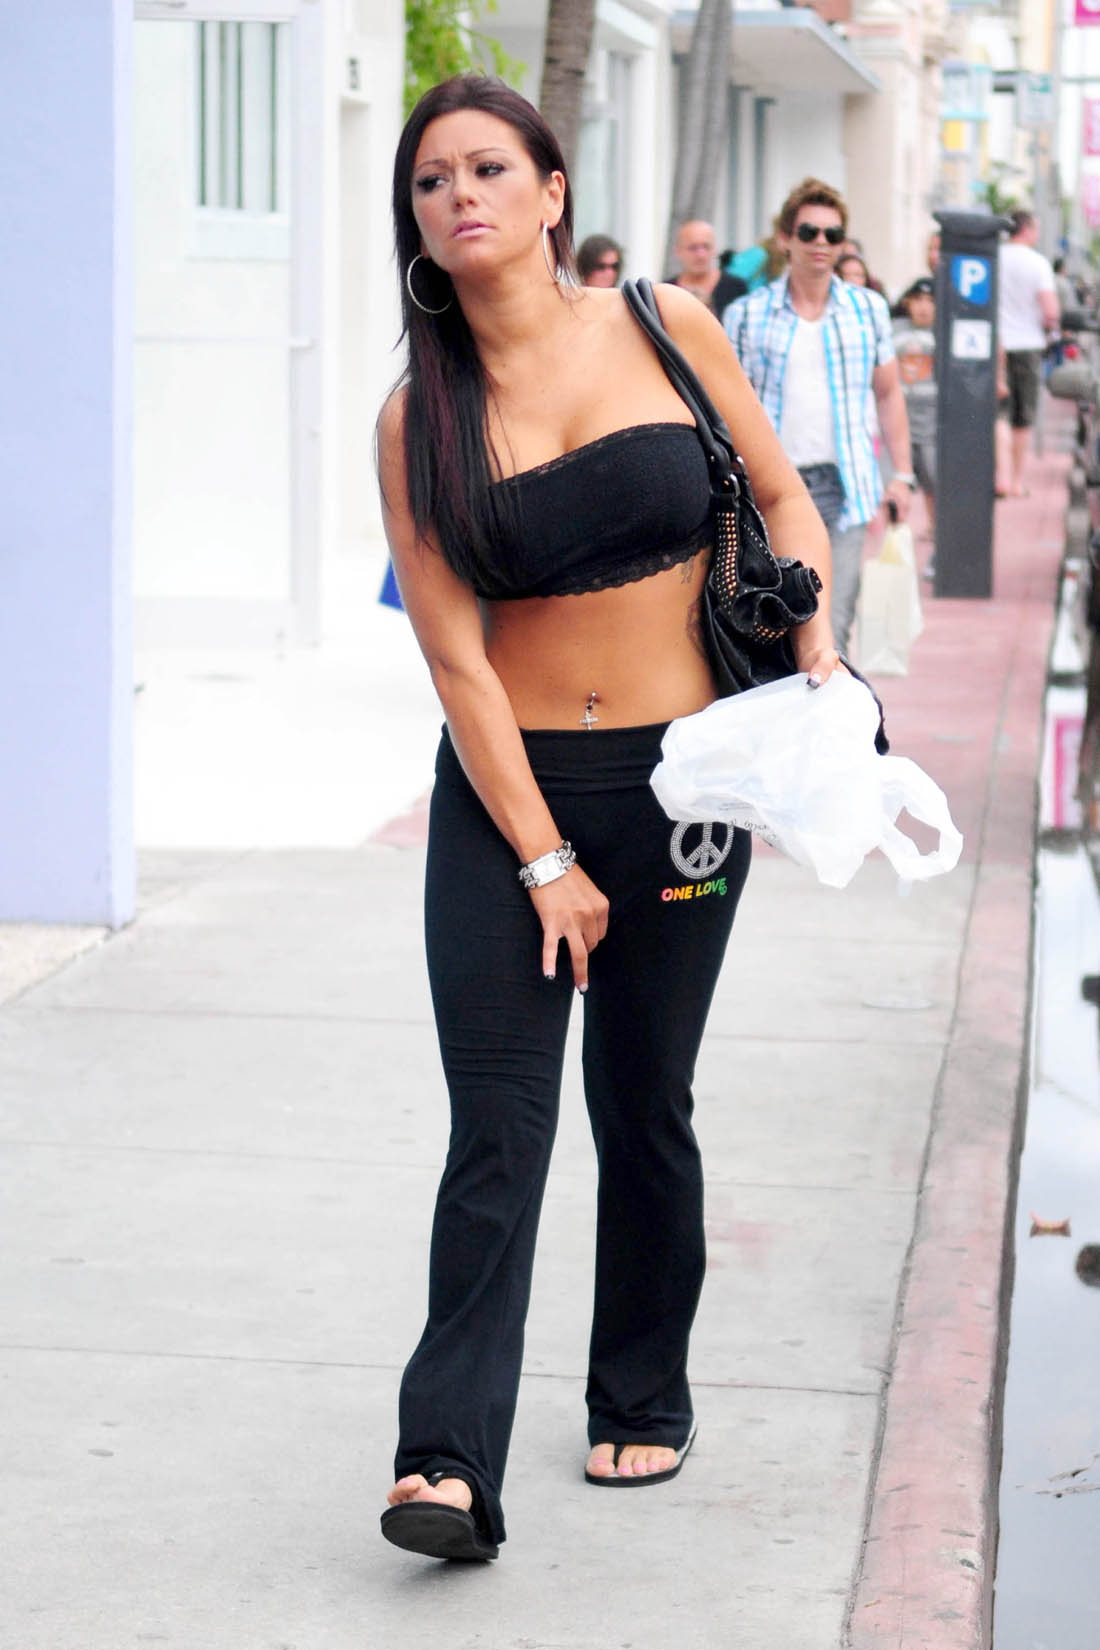 jwoww-in-black-top-candids-in-miami-01